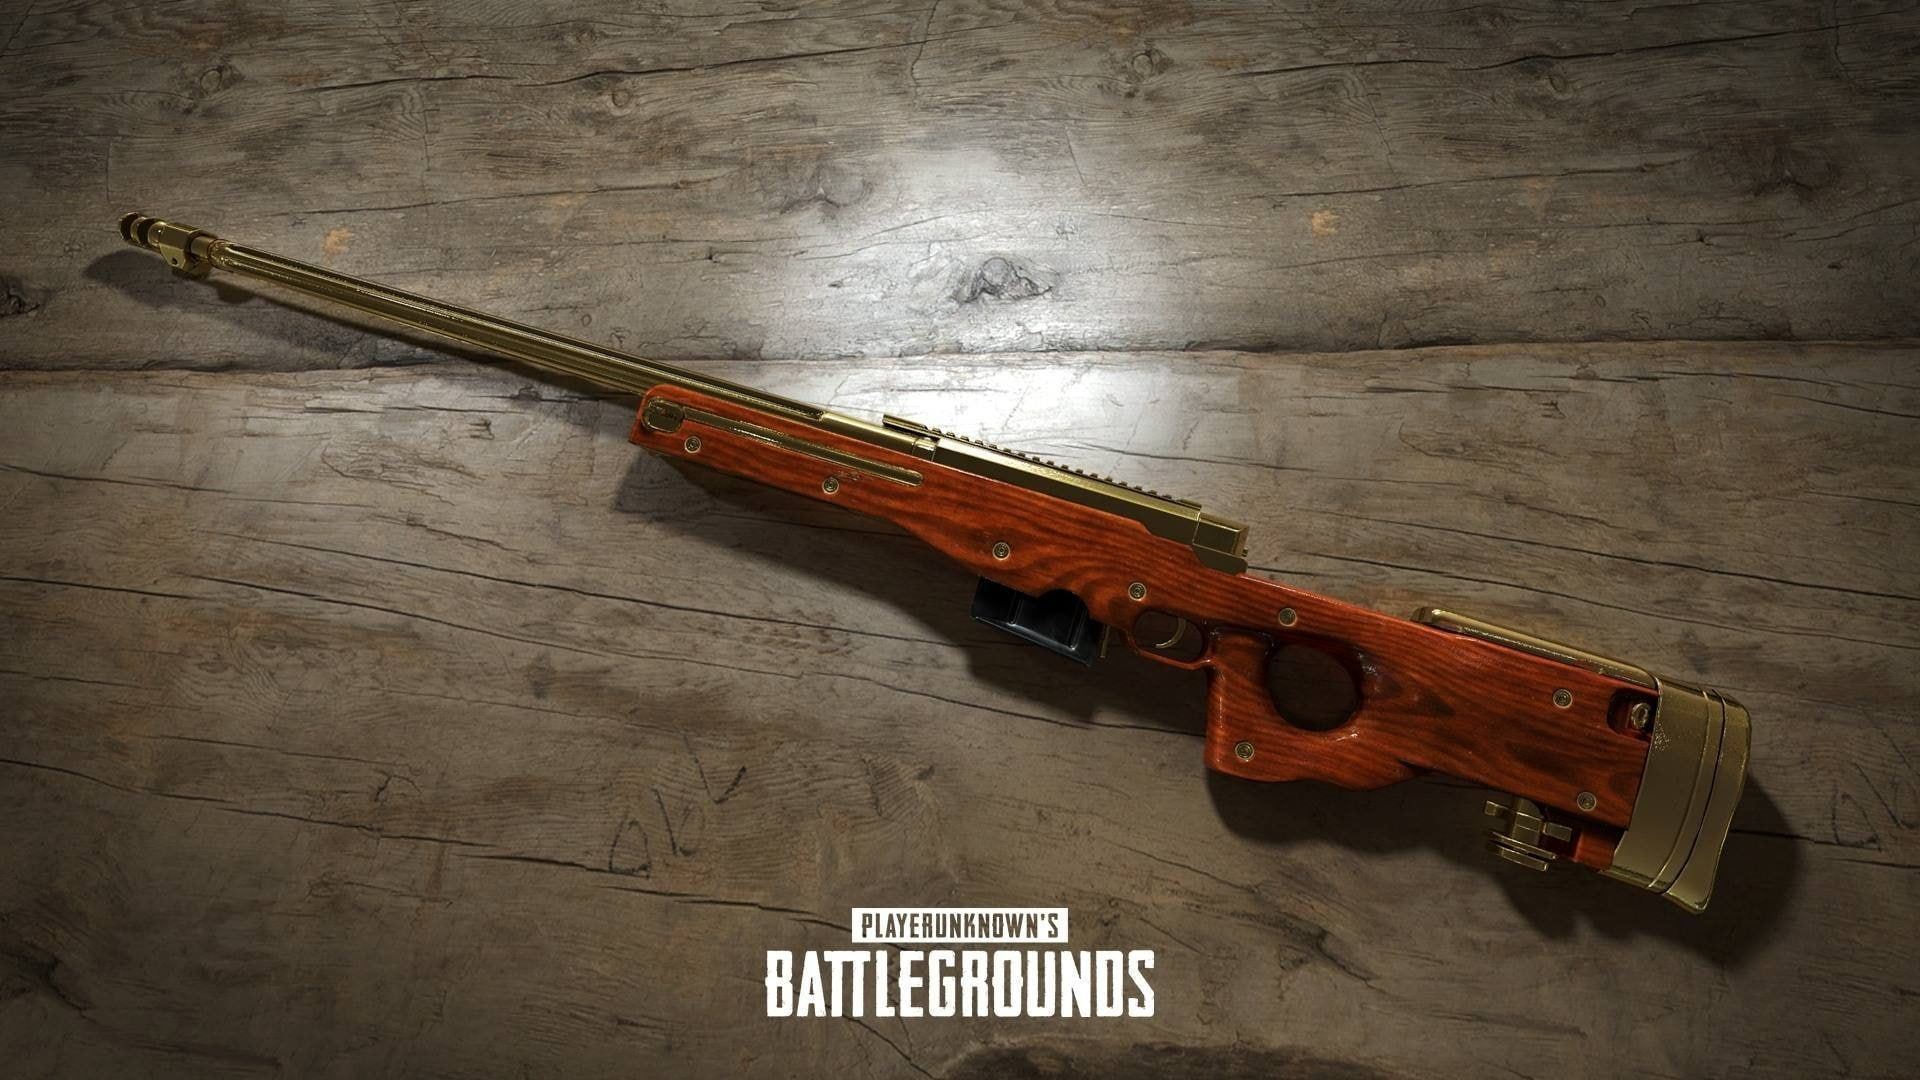 Pubg Accuracy International Awm Pc Gaming Weapon Wooden Surface Rifles 1080p Trend In 2020 Guns Wallpaper Hd Wallpapers For Pc Wallpaper Pc